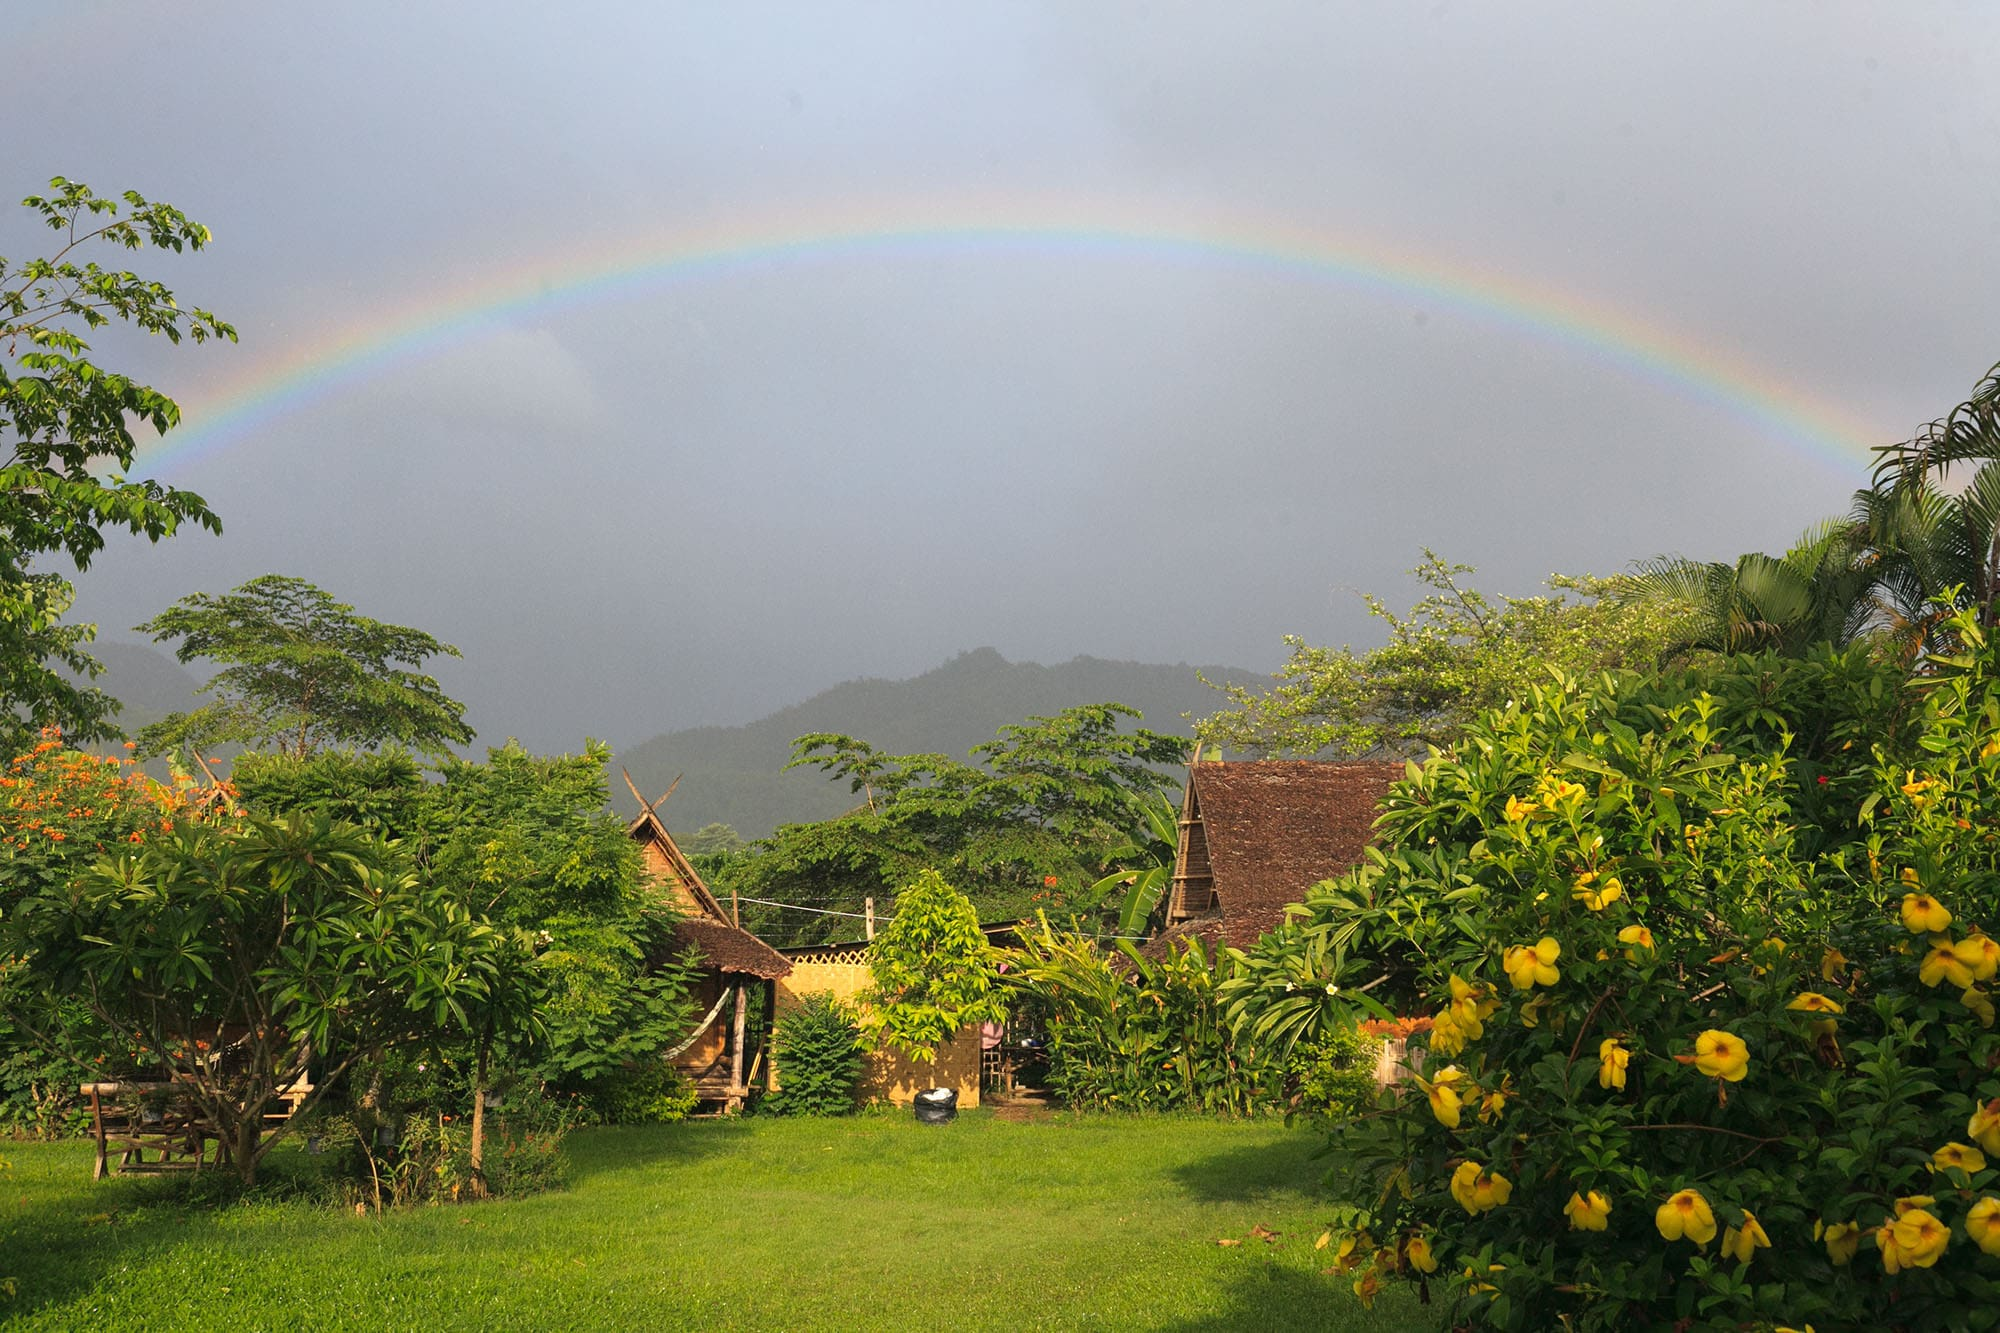 rainbow in Pai, Thailand.